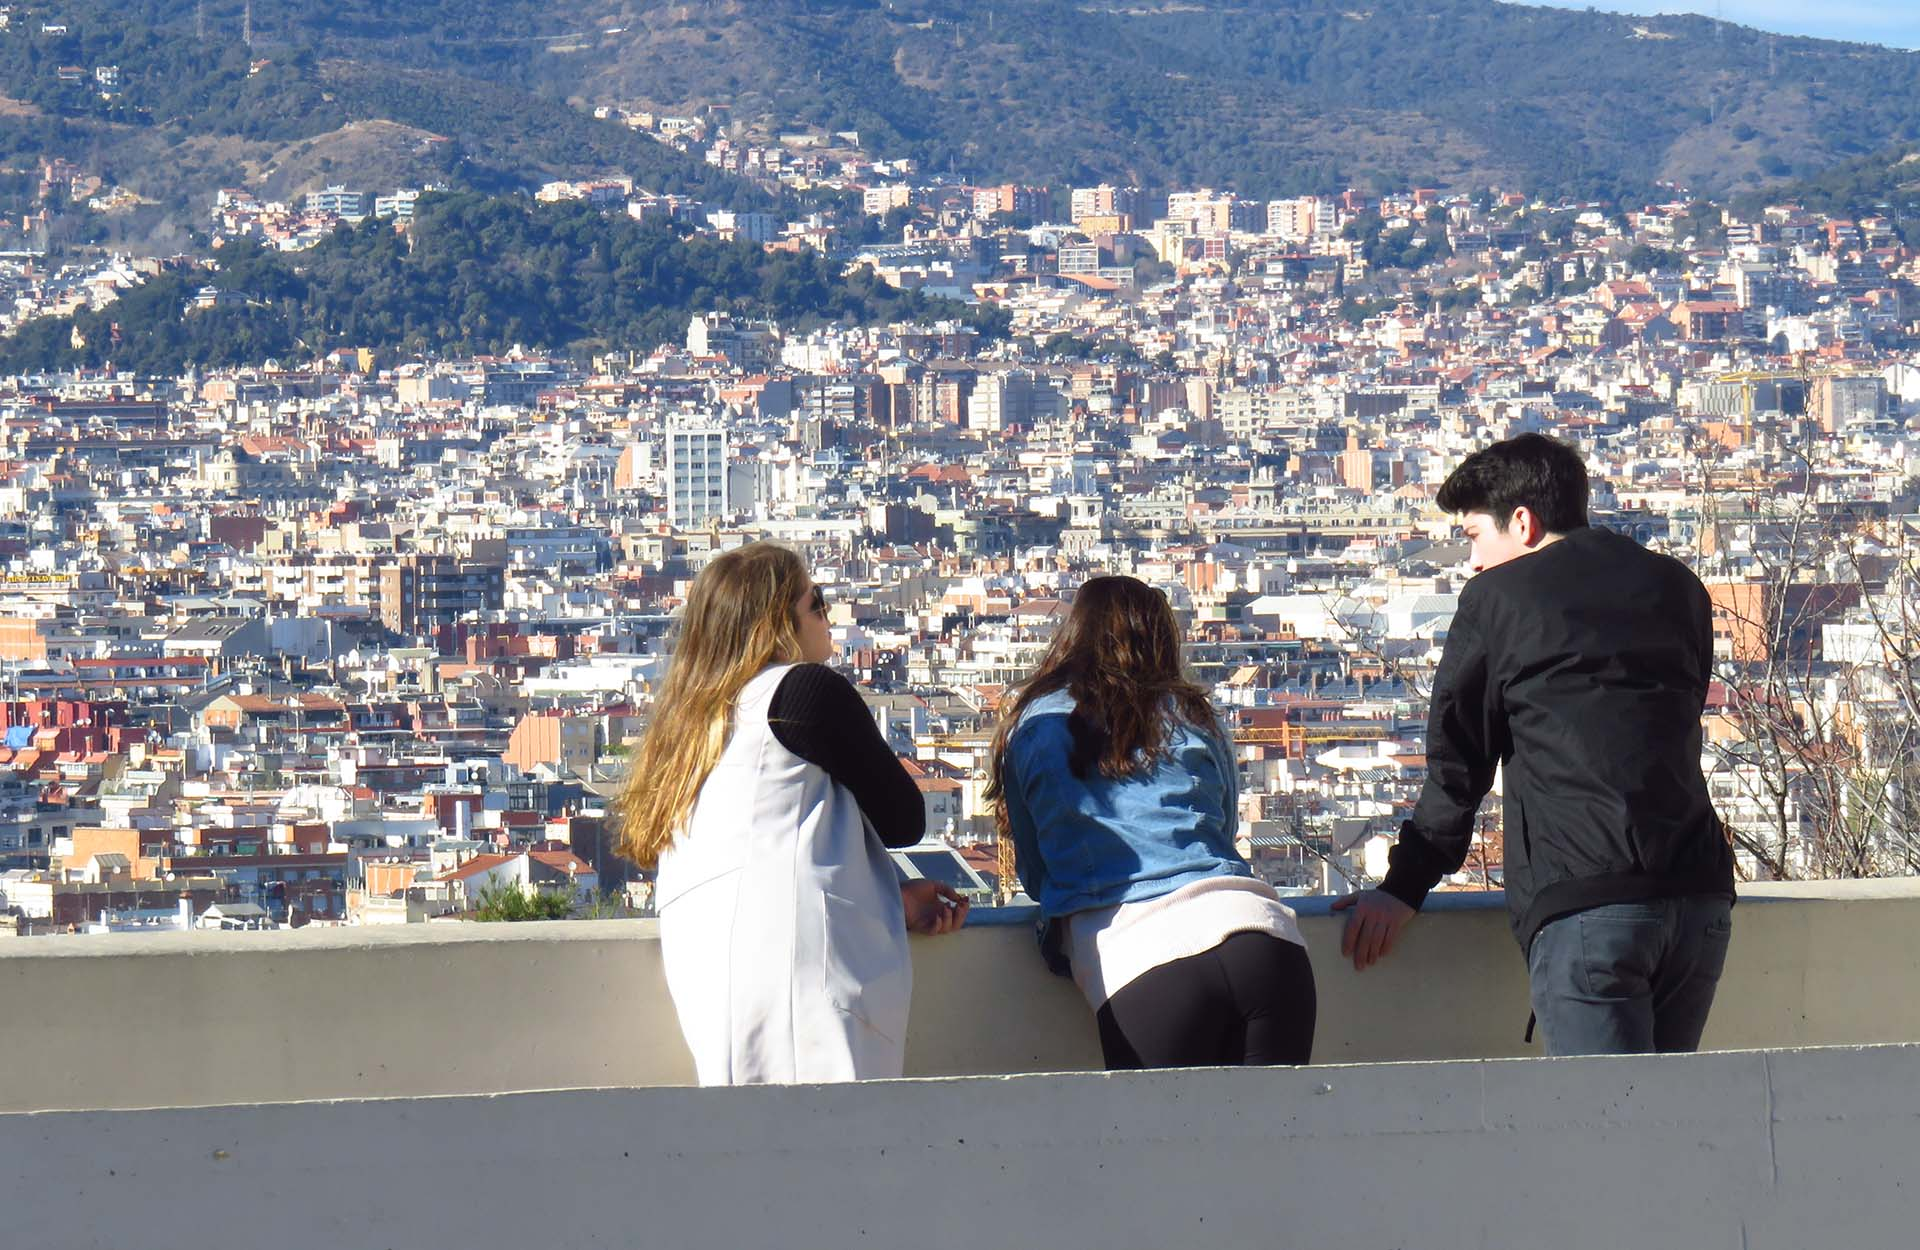 Three students watching a view in Spain